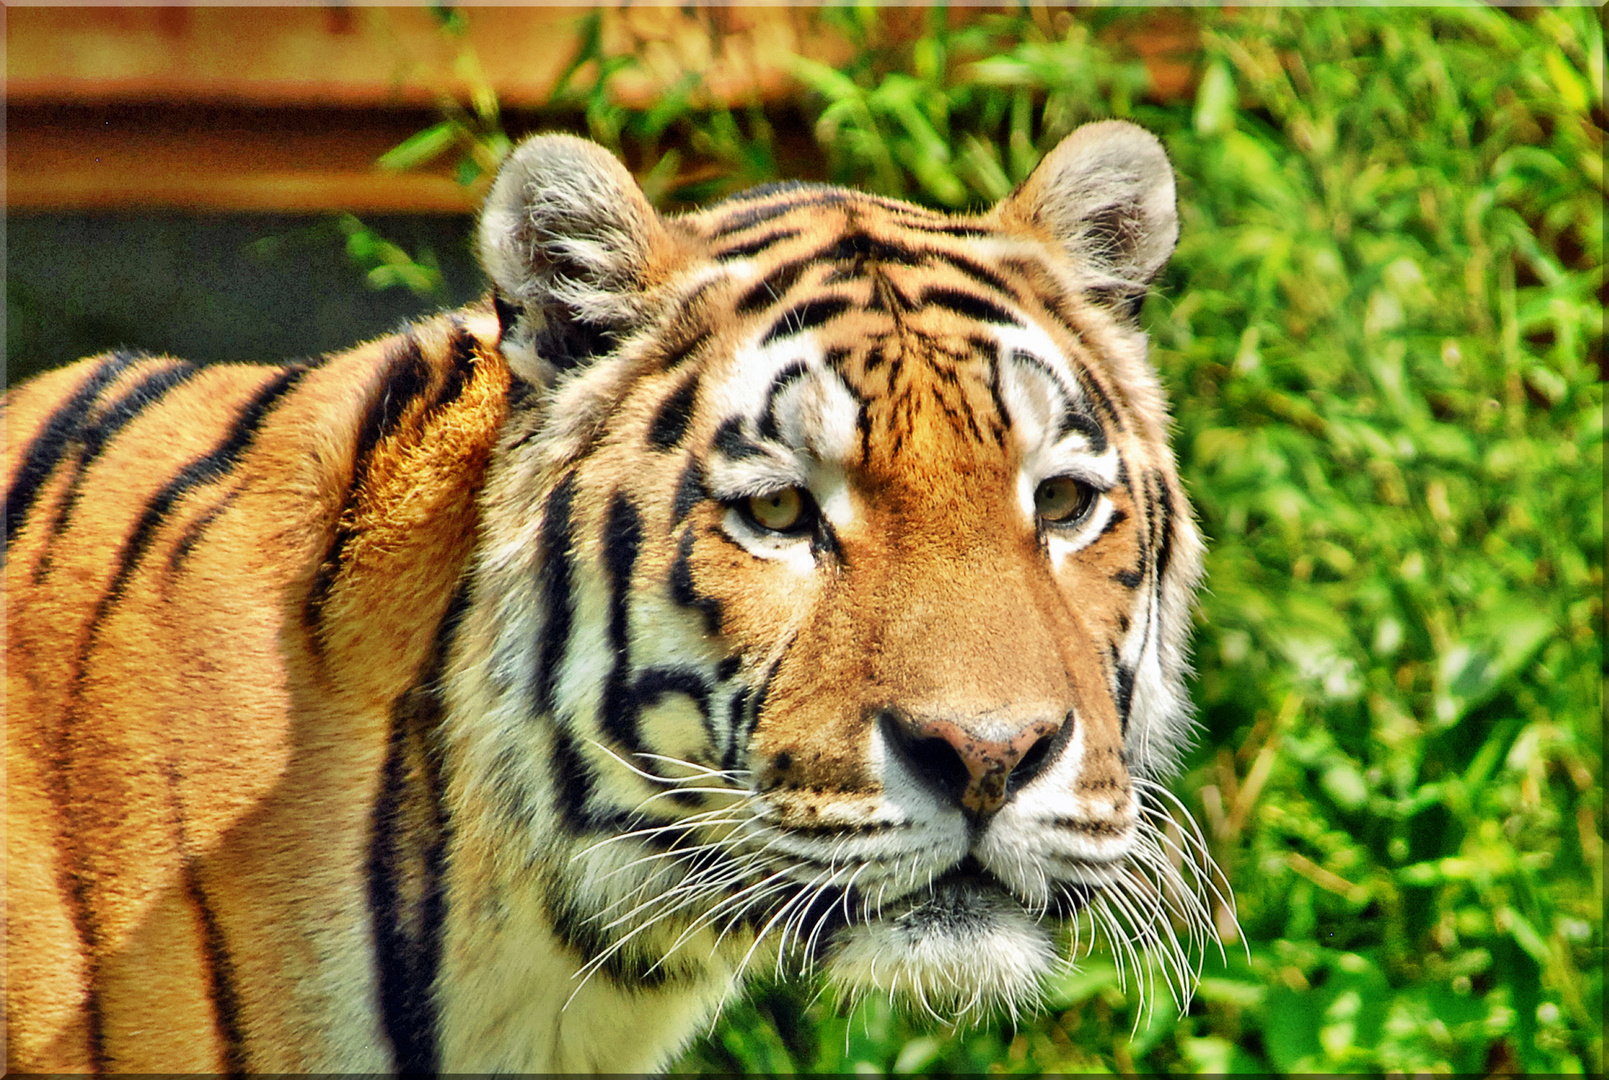 Tigerportrait